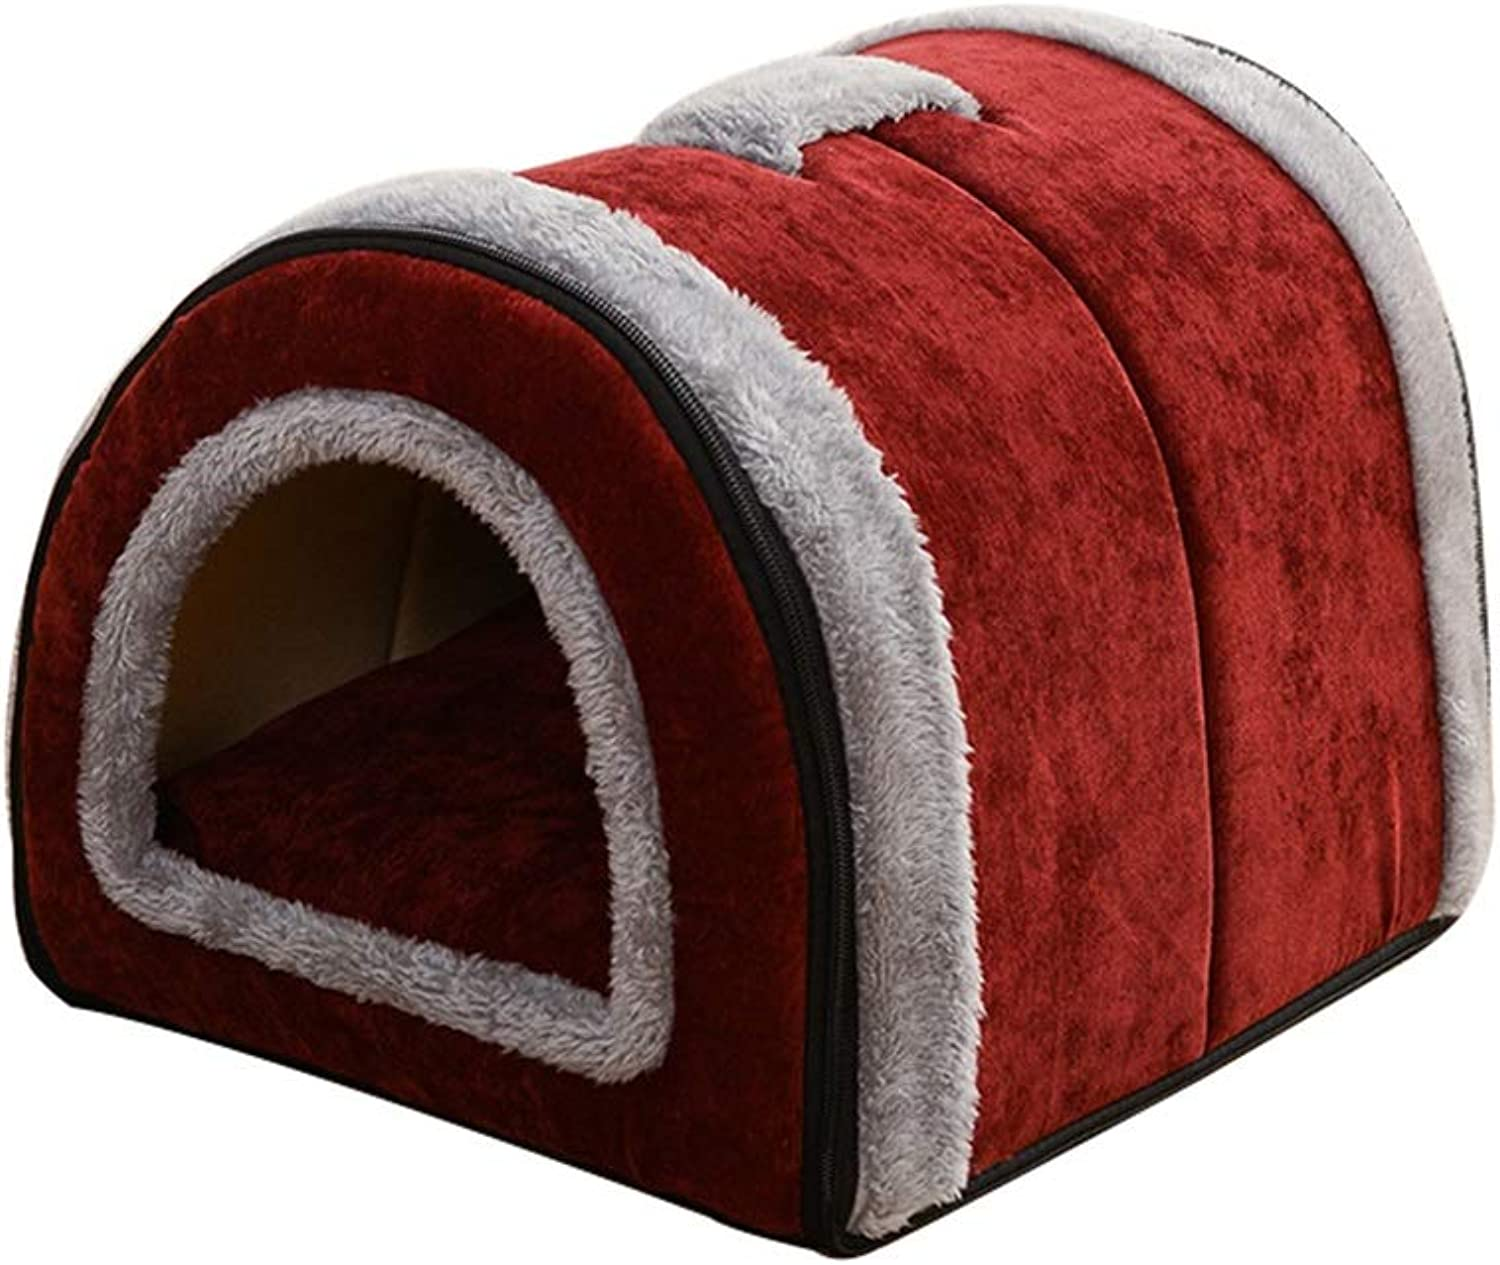 Pet House 2 In 1 Pet House And Sofa, Nonslip Foldable Soft Warm Cat Puppy Pet Nest Cave Bed House With Removable Cushion 4 Sizes (color   C, Size   Xl)